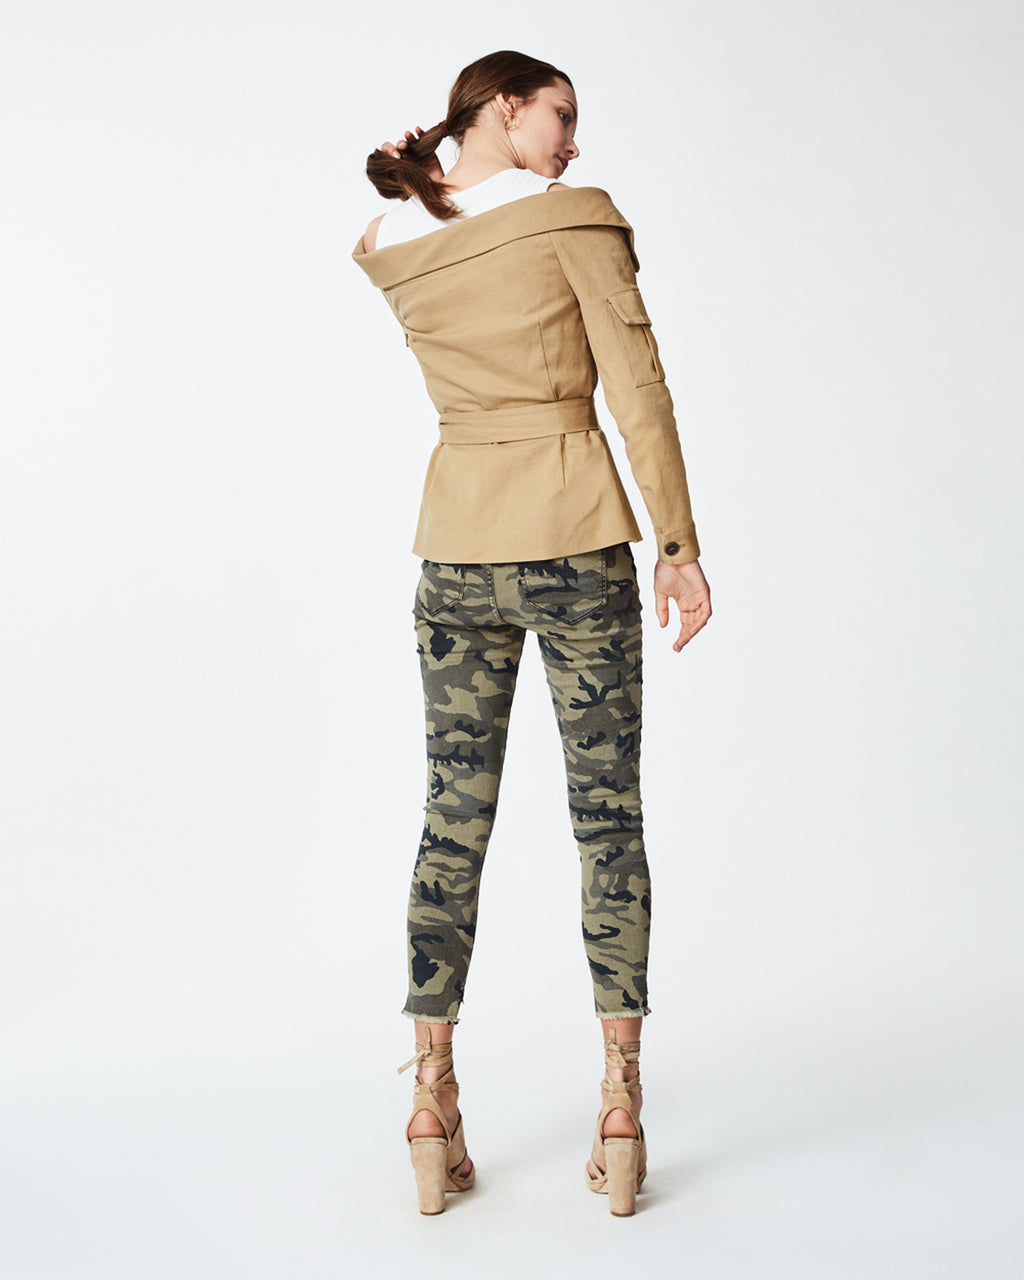 CC10166 - OFF THE SHOULDER JACKET - outerwear - jackets - In a safari-like khaki hue, this cotton jacket is a versatile piece that can be worn year round. With a cotton ribbed, detachable crop top this can be worn as a top or along with a silk blouse. Finished with tarnished front buttons for closure and belt. Fully lined. Final Sale